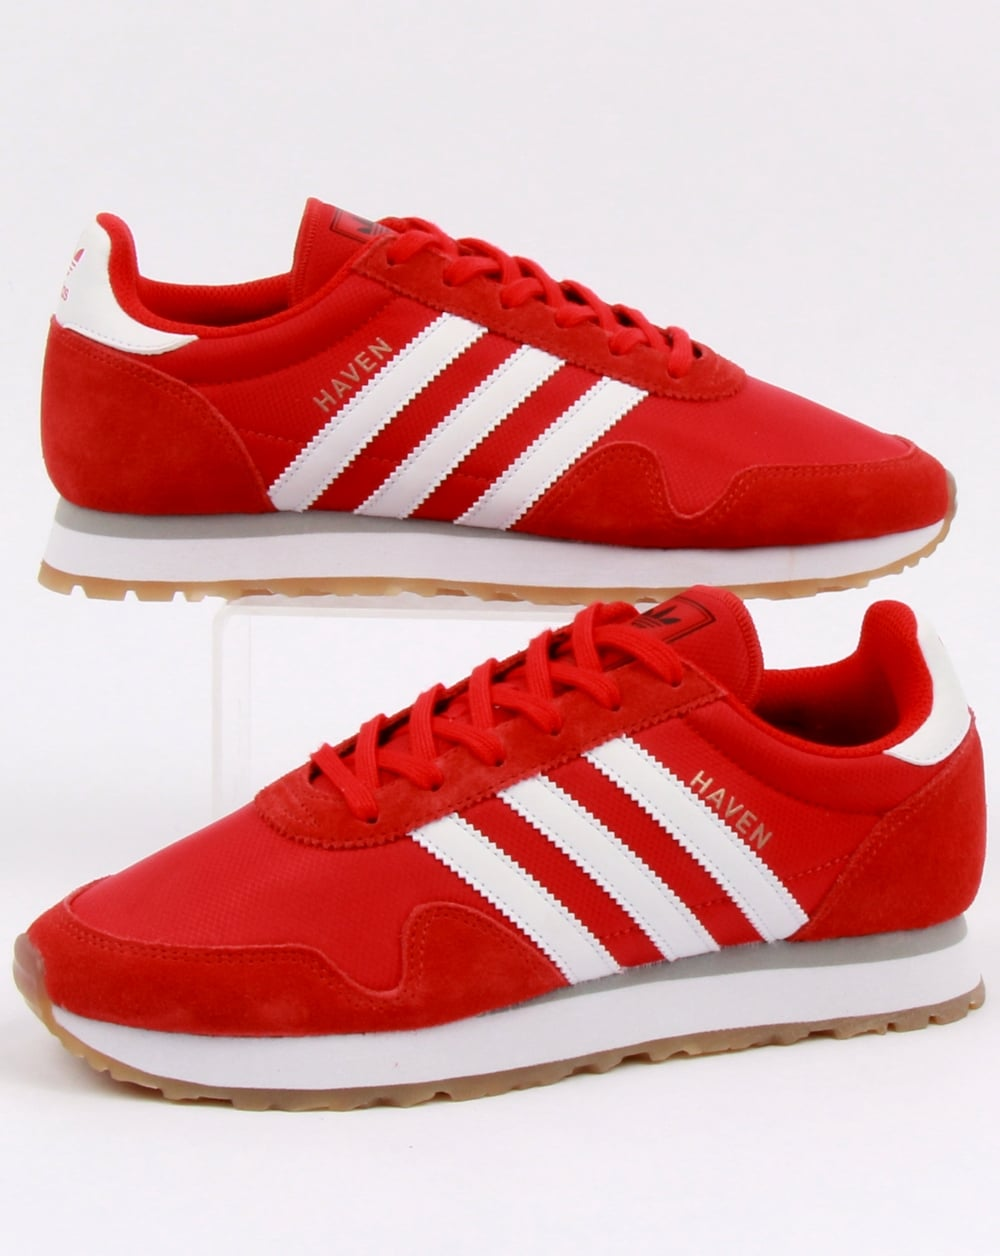 adidas Trainers Adidas Haven Trainers Red White Gum 66686356c